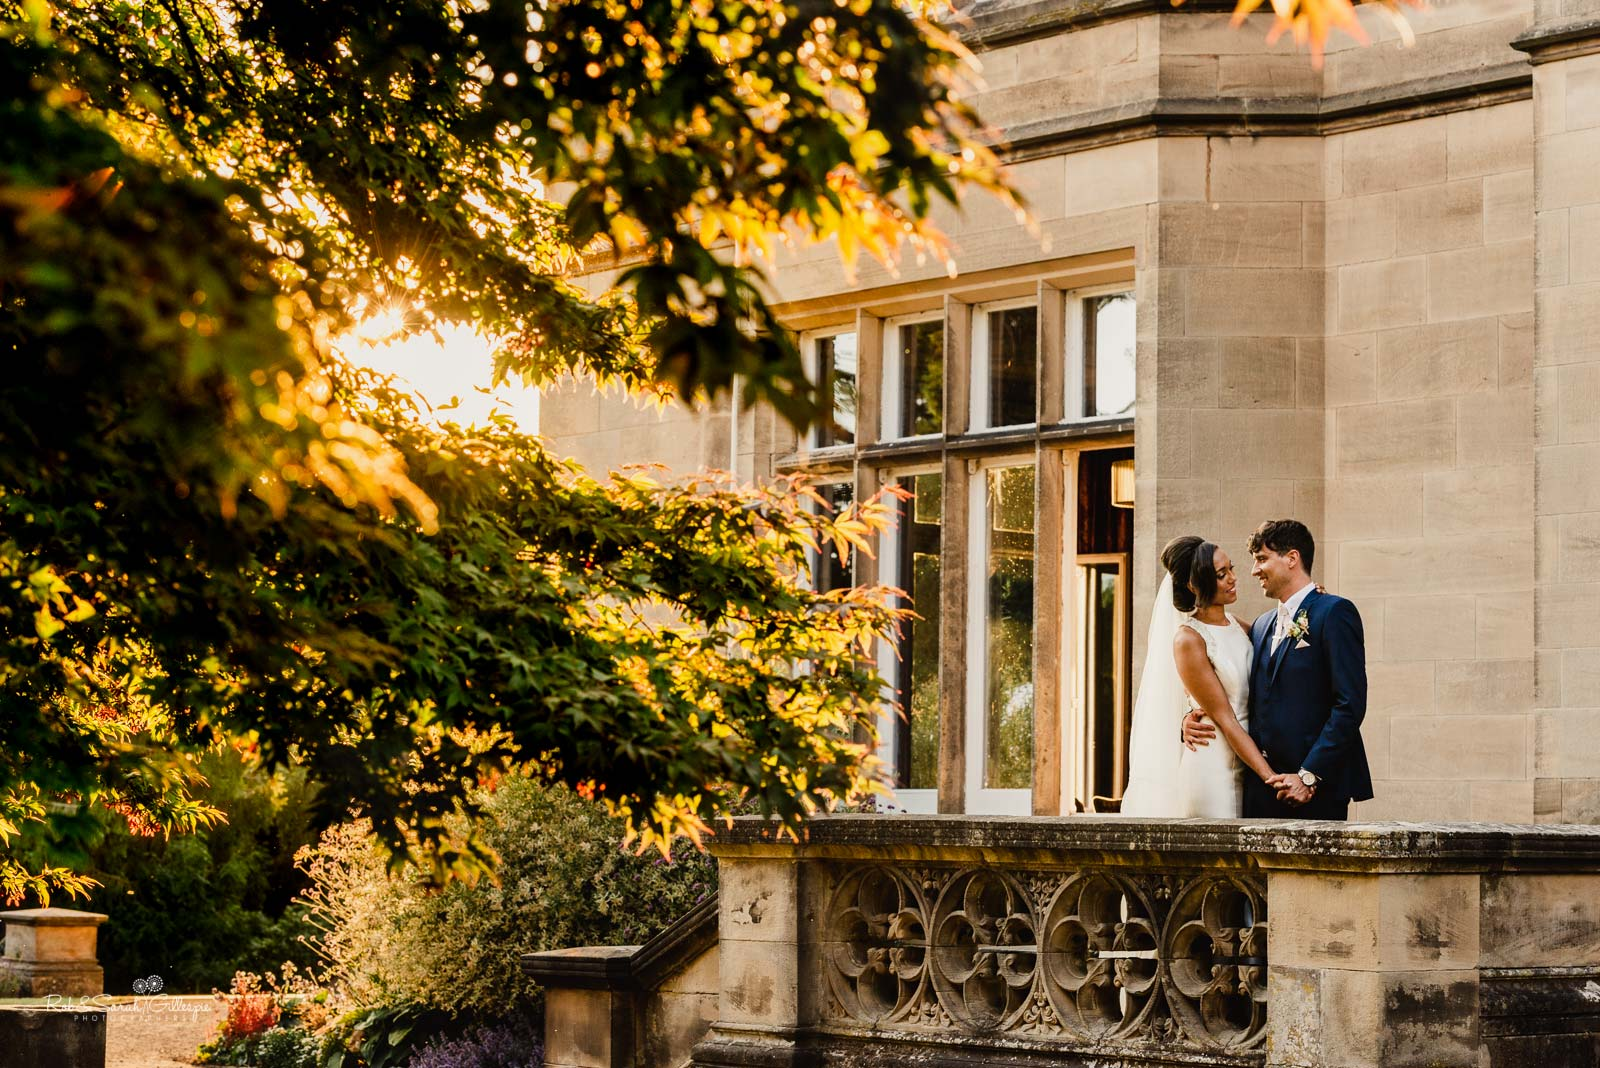 Bride and groom together at Hampton Manor in evening light